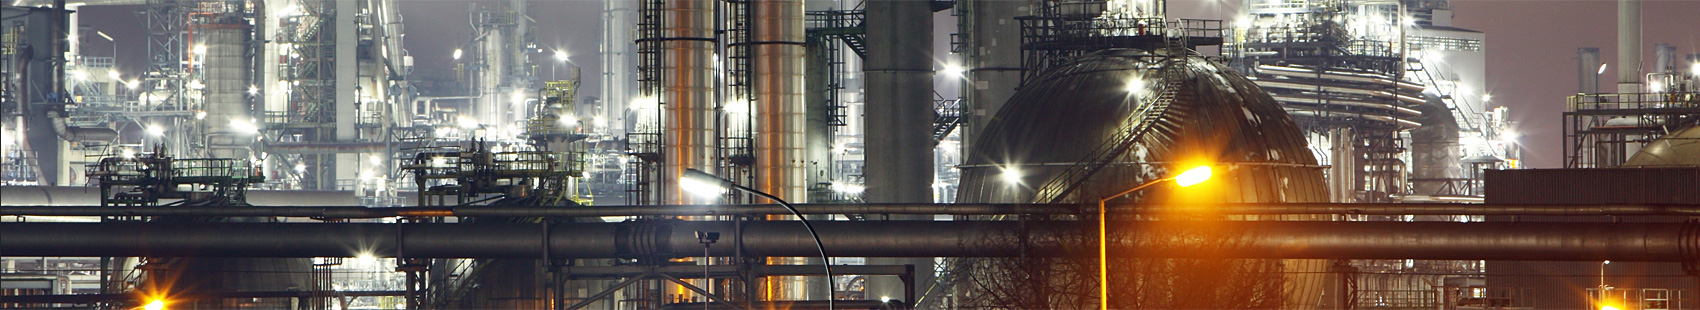 Productivity Advances for Syngas, Olefins and their Derivatives